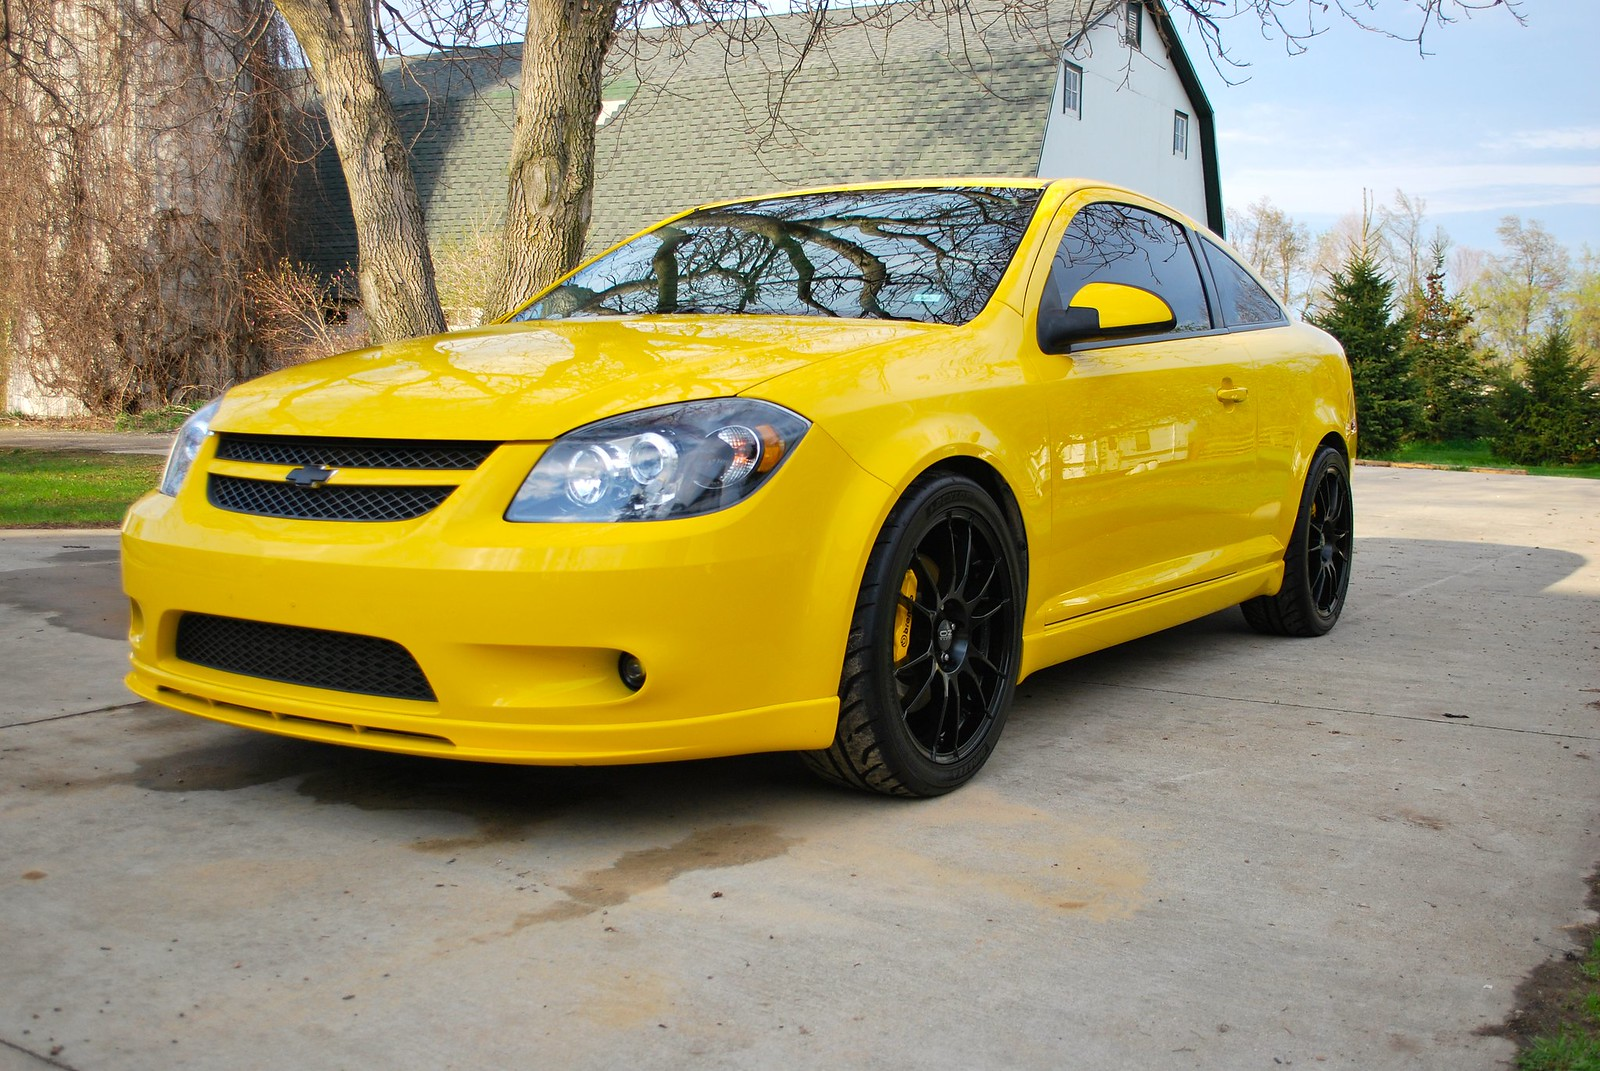 for sale 2009 cobalt ss turbo in rally yellow cobalt ss. Black Bedroom Furniture Sets. Home Design Ideas